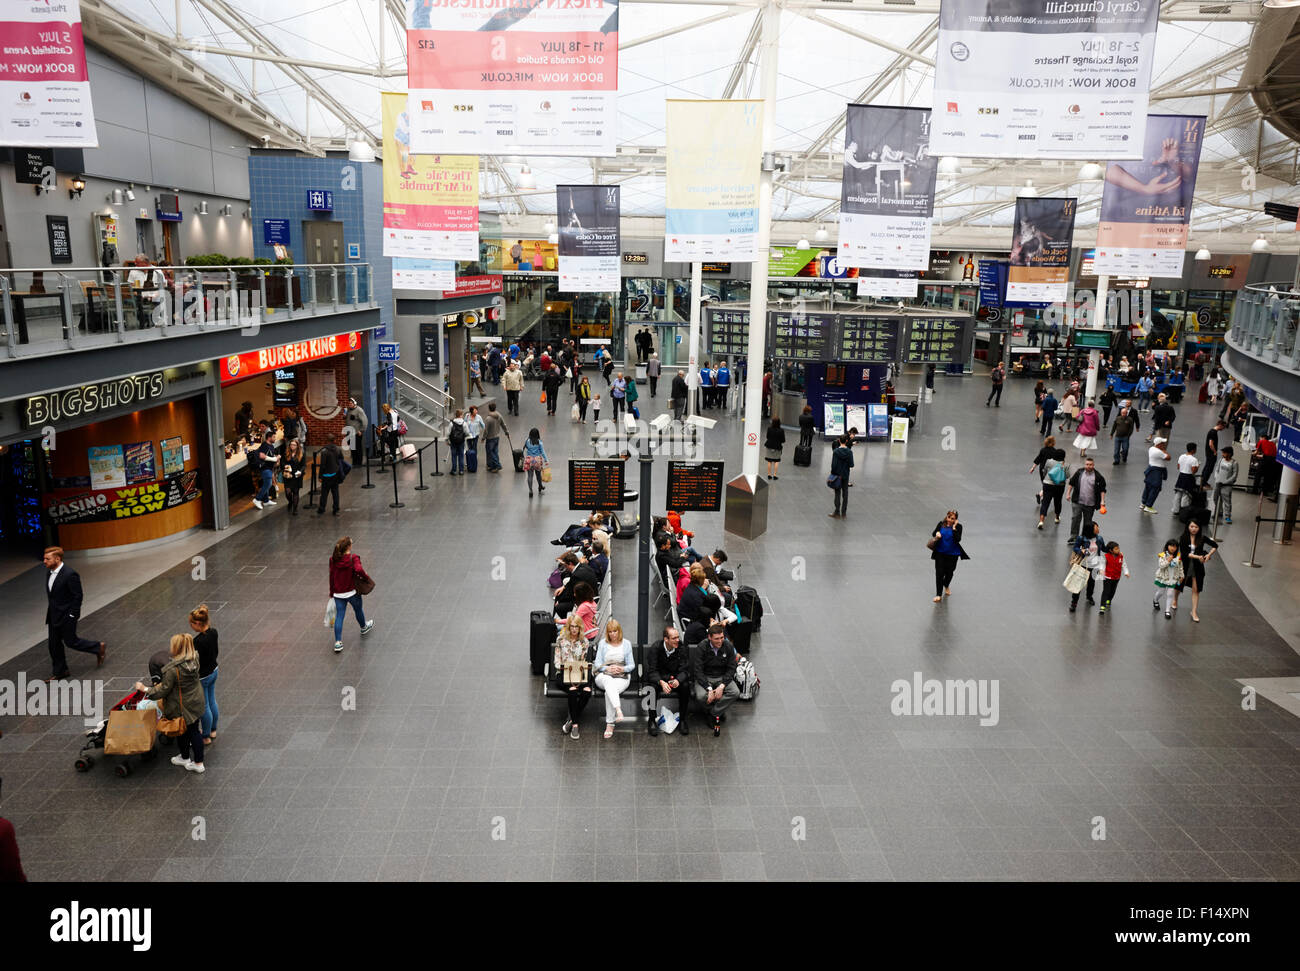 Piccadilly train station concourse Manchester UK - Stock Image